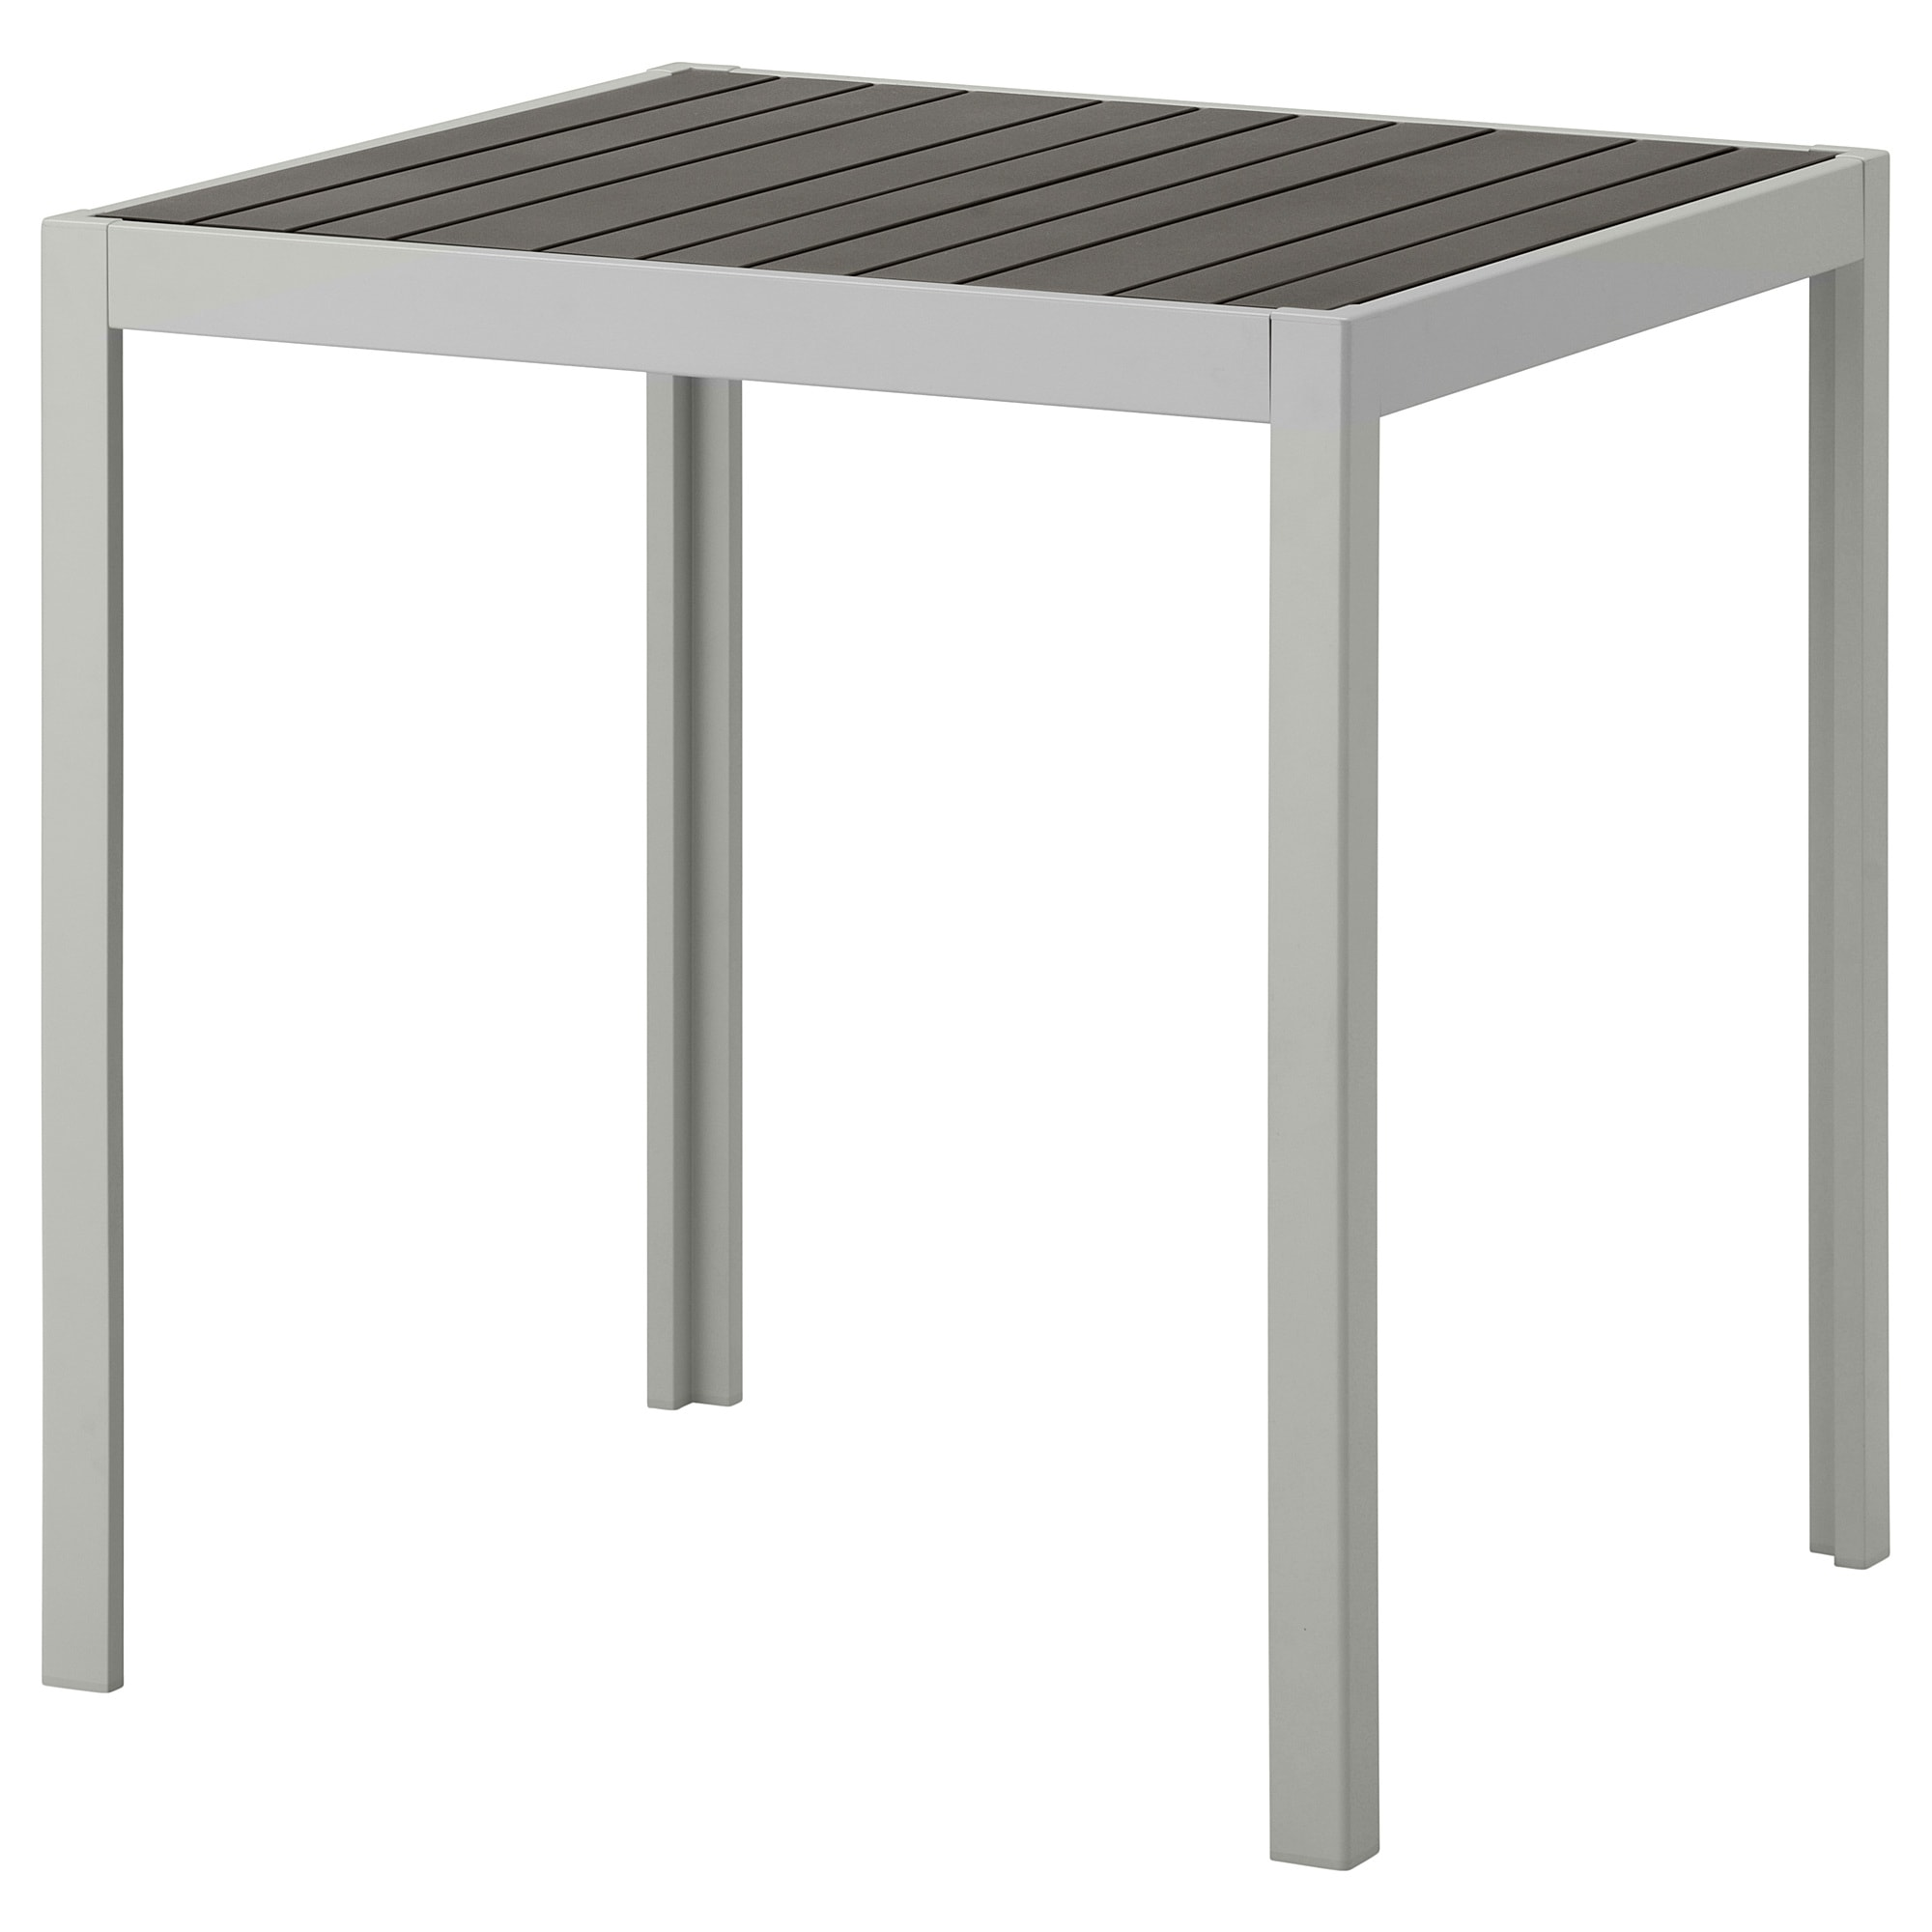 Nice Outdoor Table Part - 1: 2018-05-20T05:00-07:00 ...